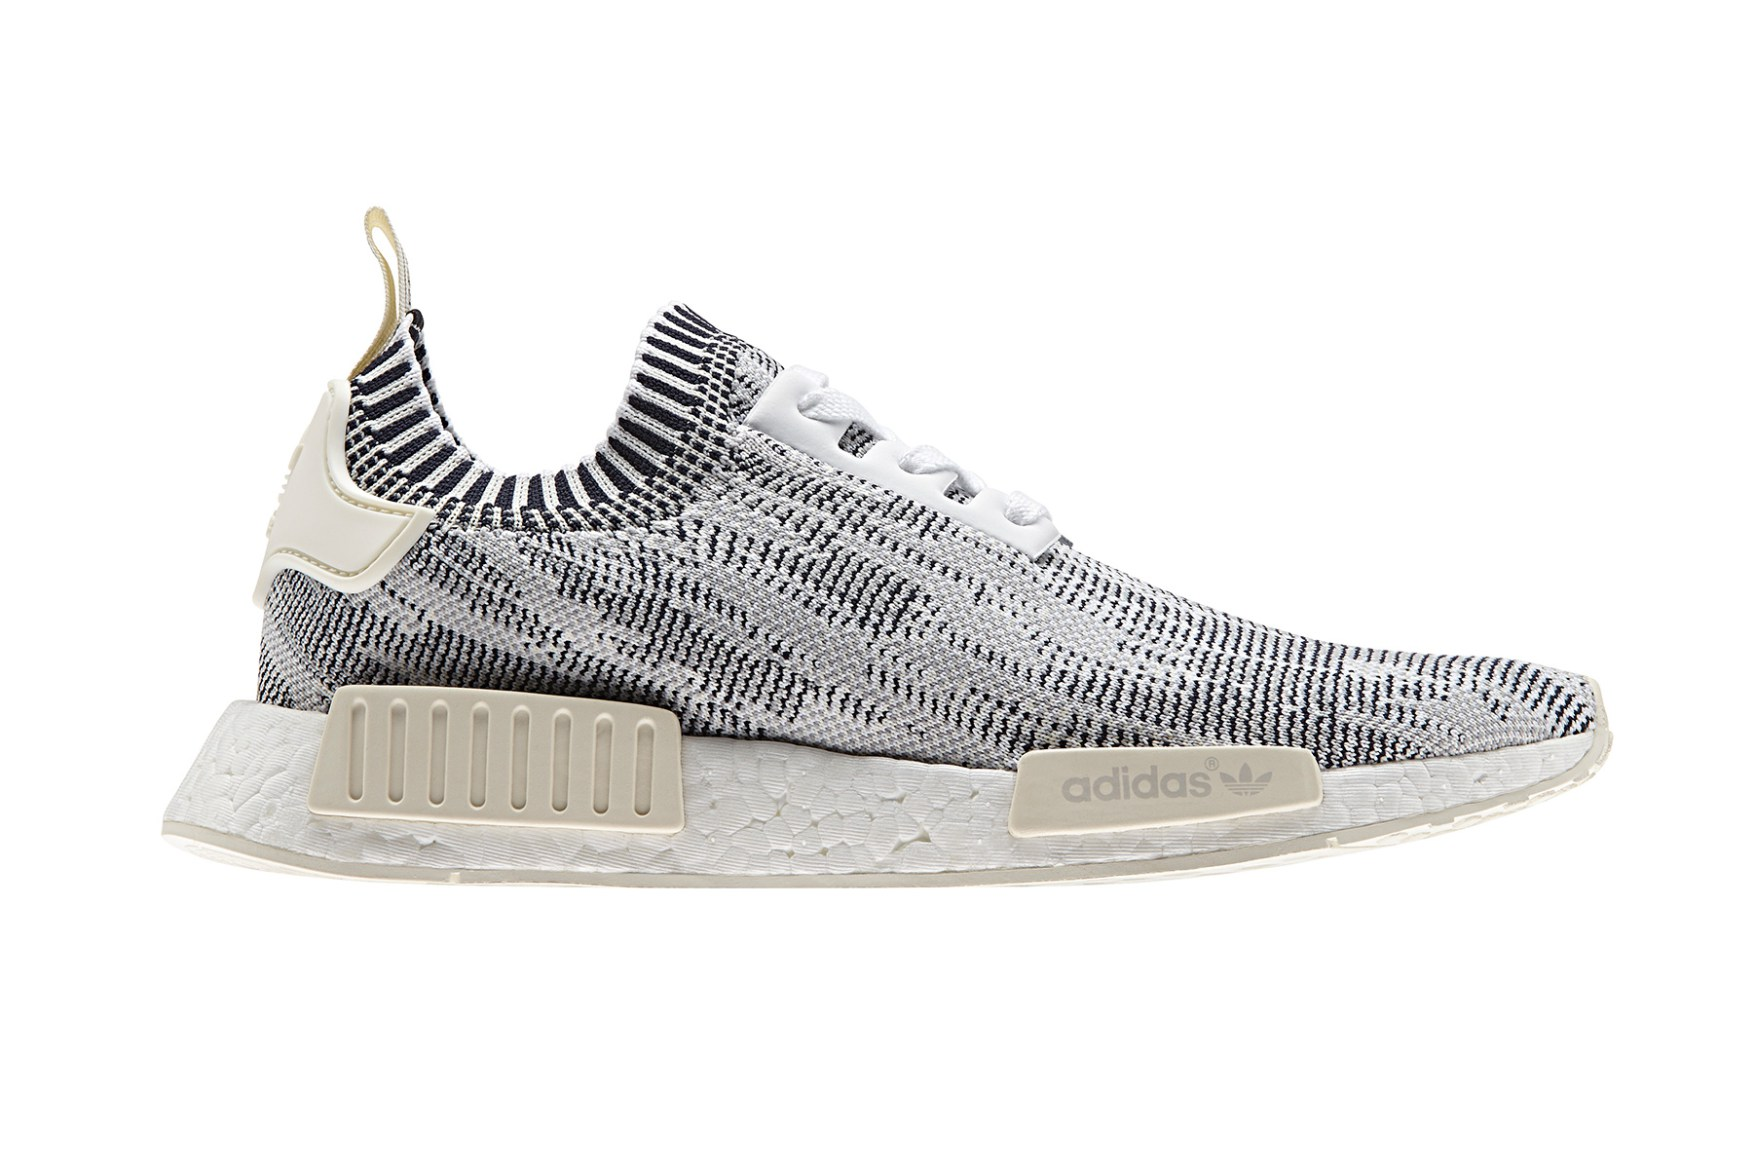 adidas-nmd-r1-camo-pack-4